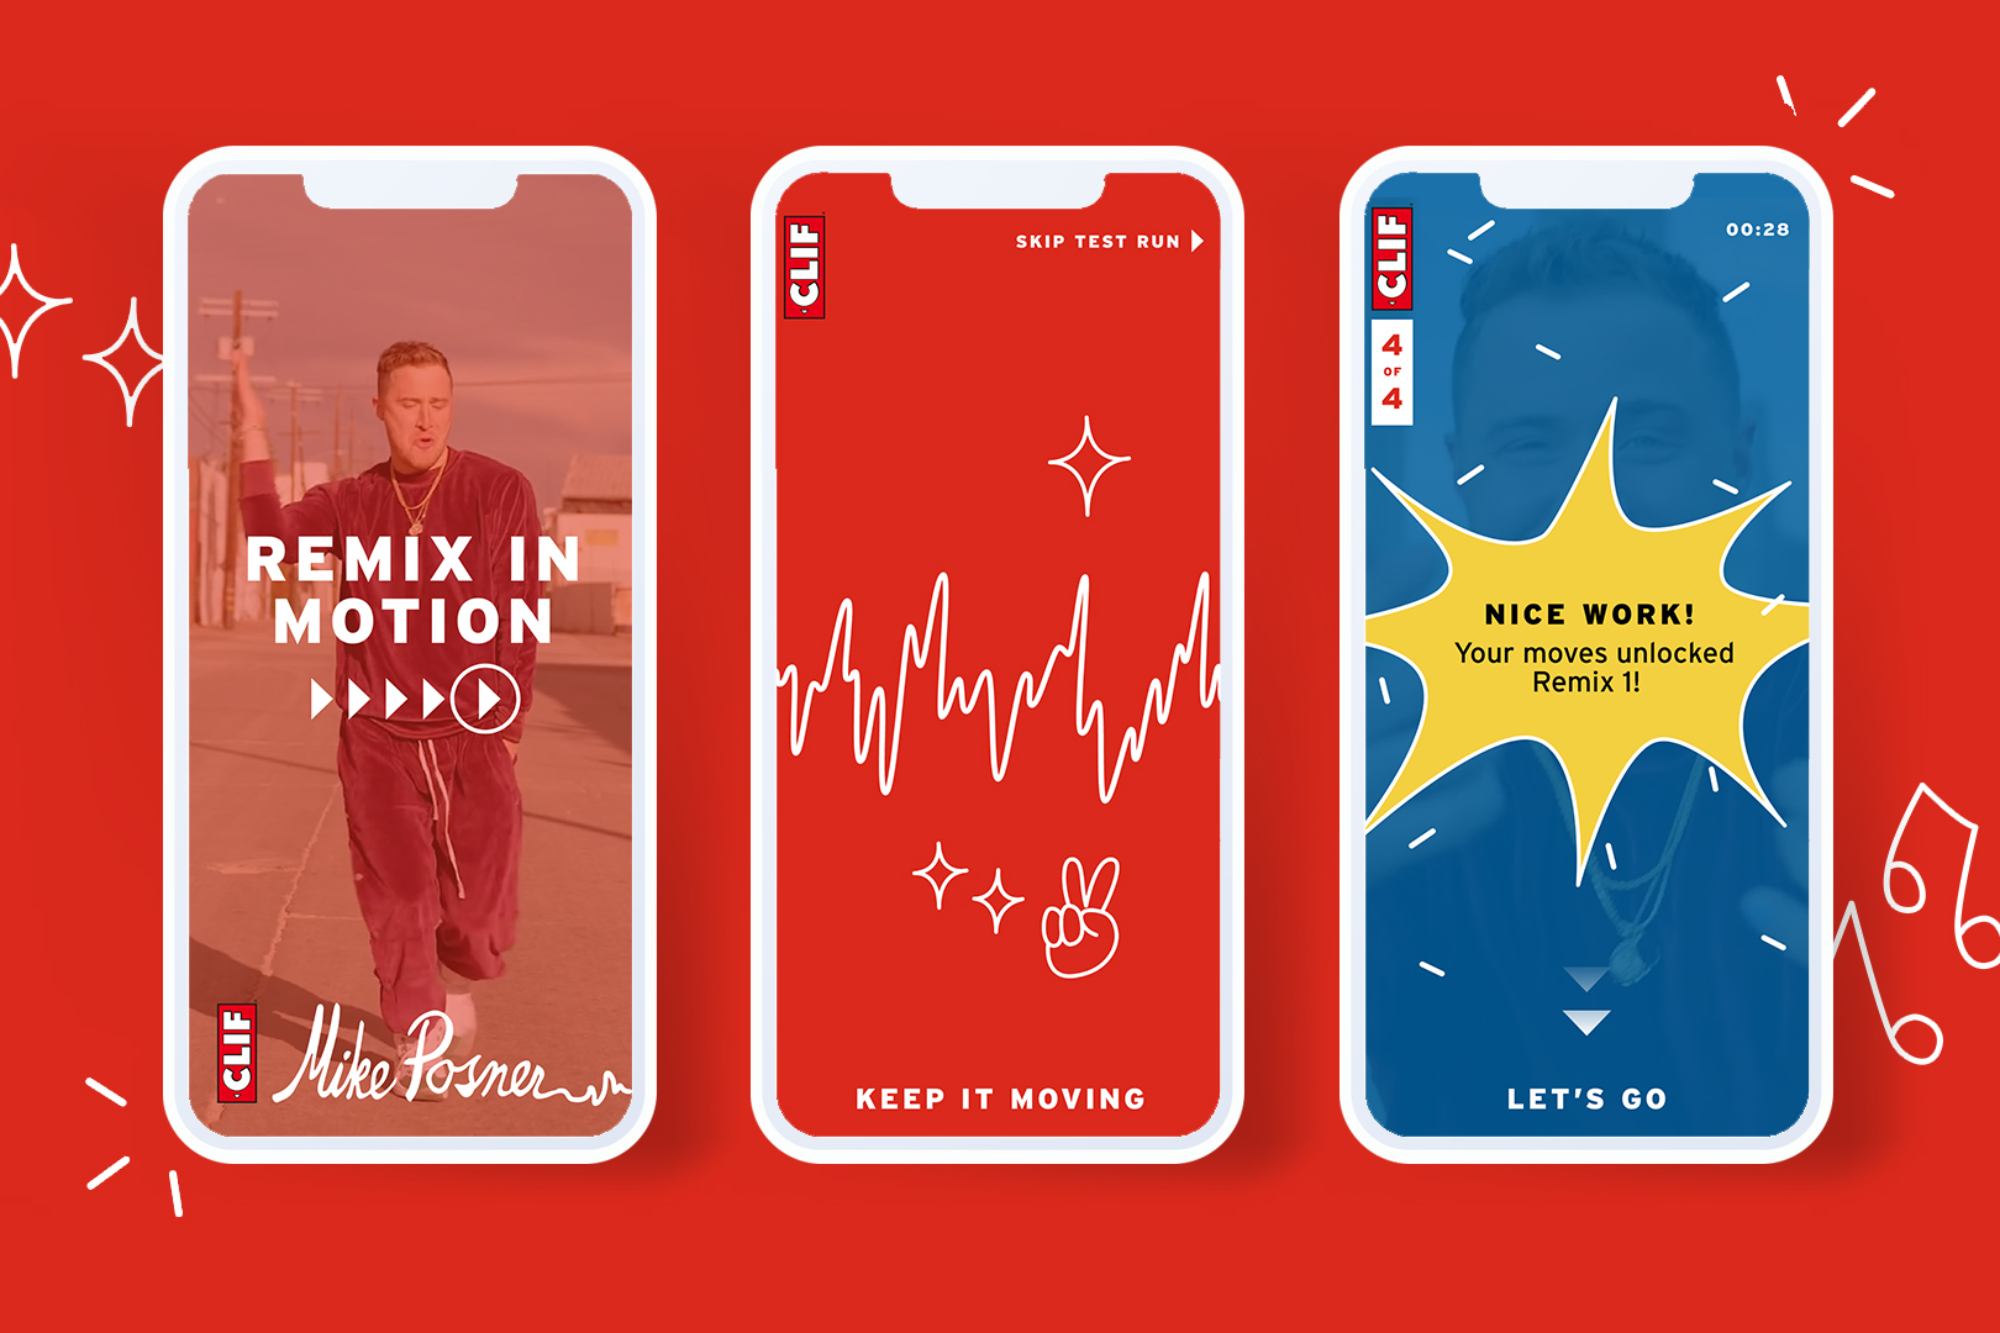 Clif Bar and Mike Posner collaborate on the Remix in Motion app